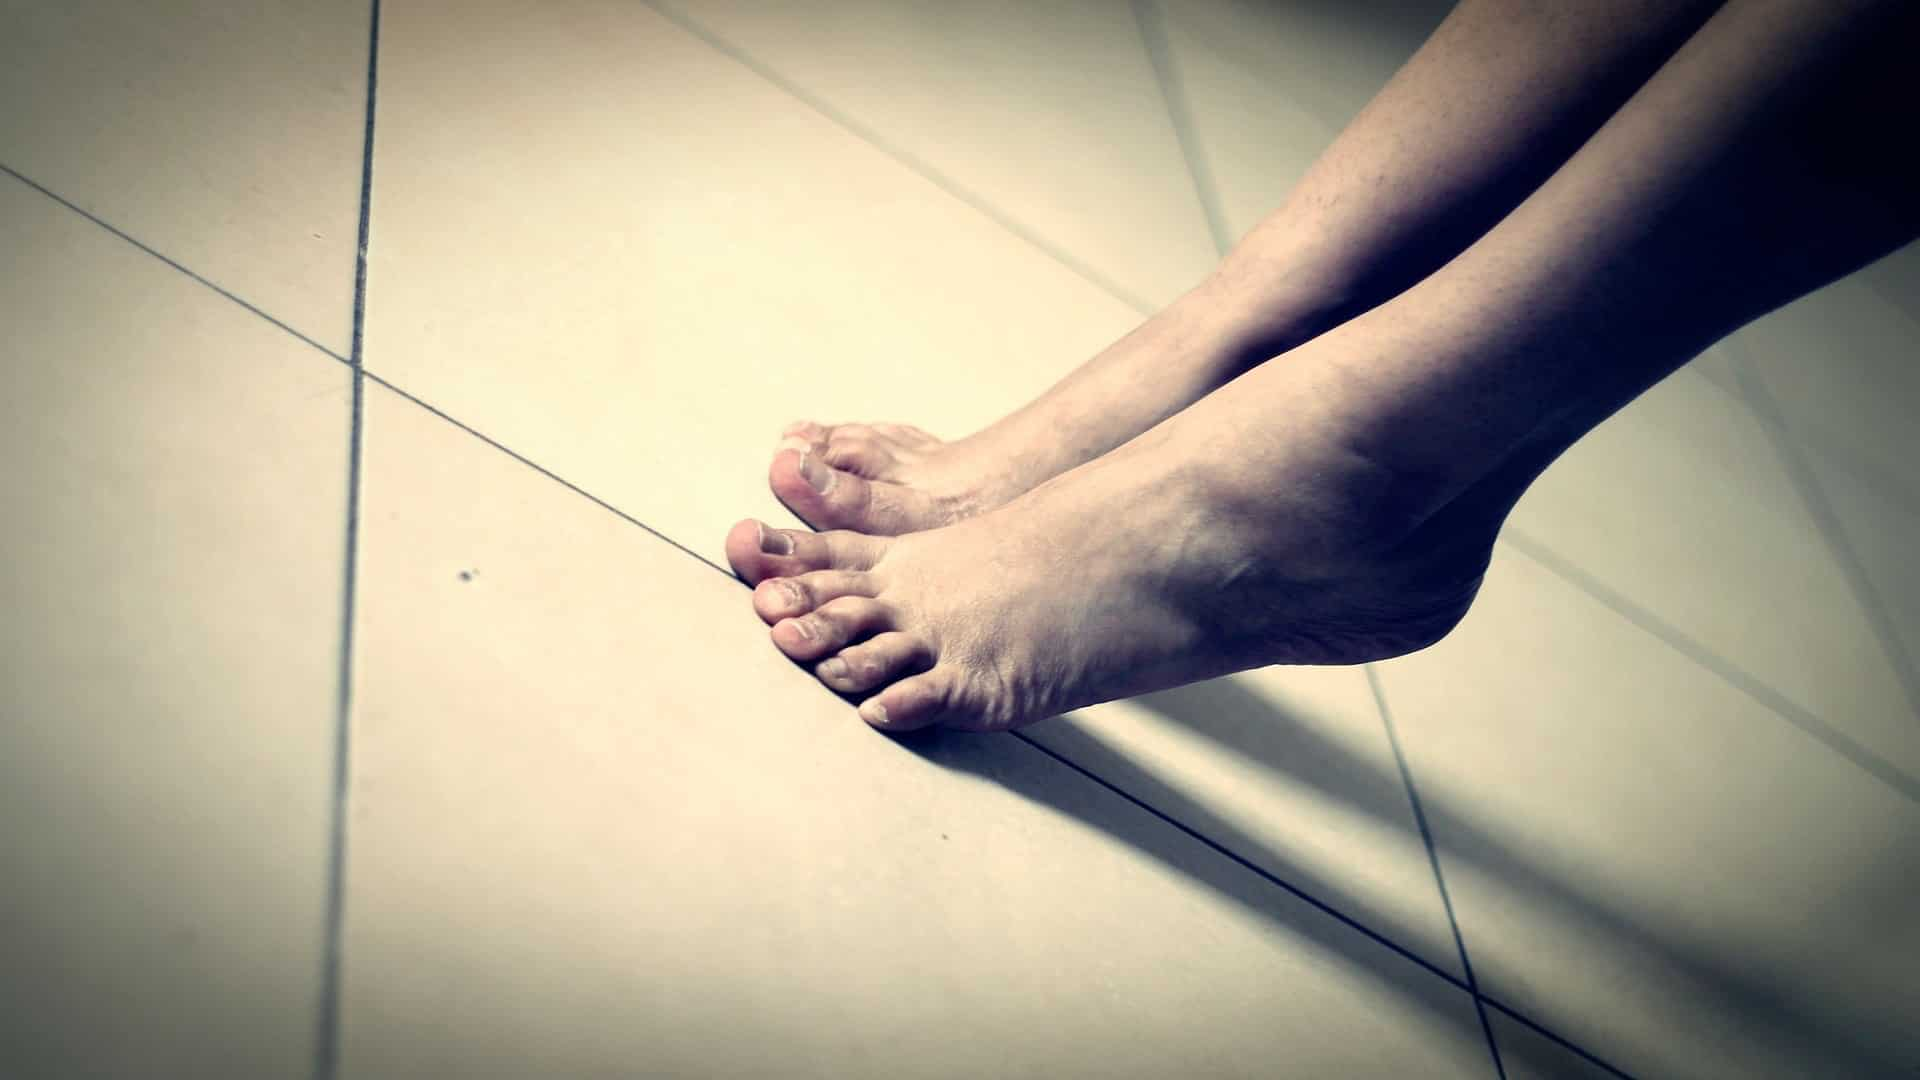 Curing Painful Diabetic Neuropathy